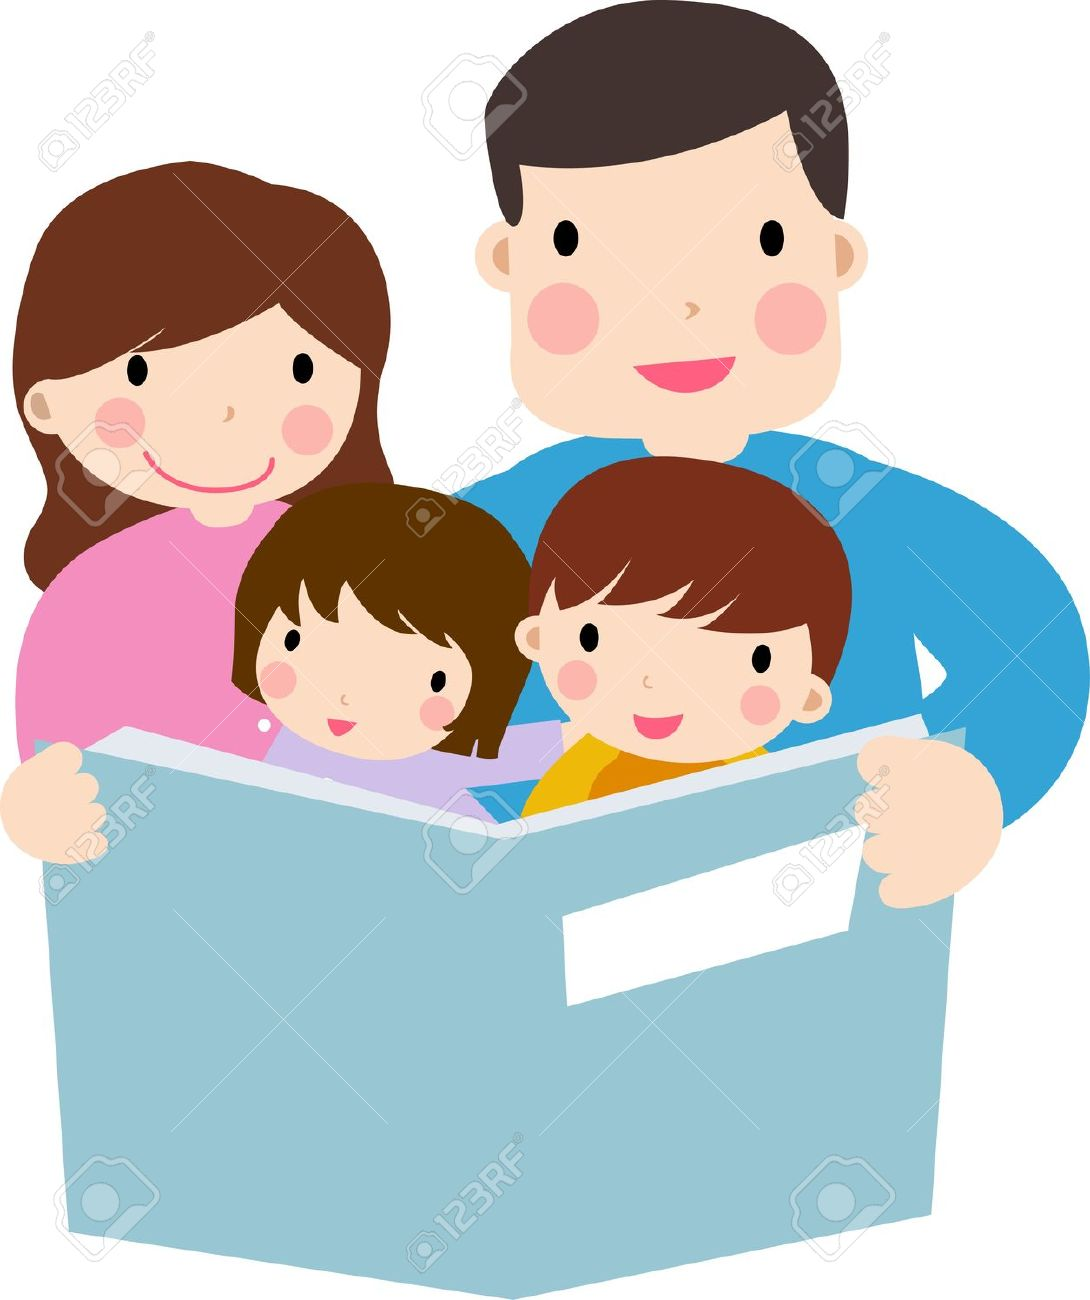 1090x1300 Child Reading Book Clip Art Clipart Image 2